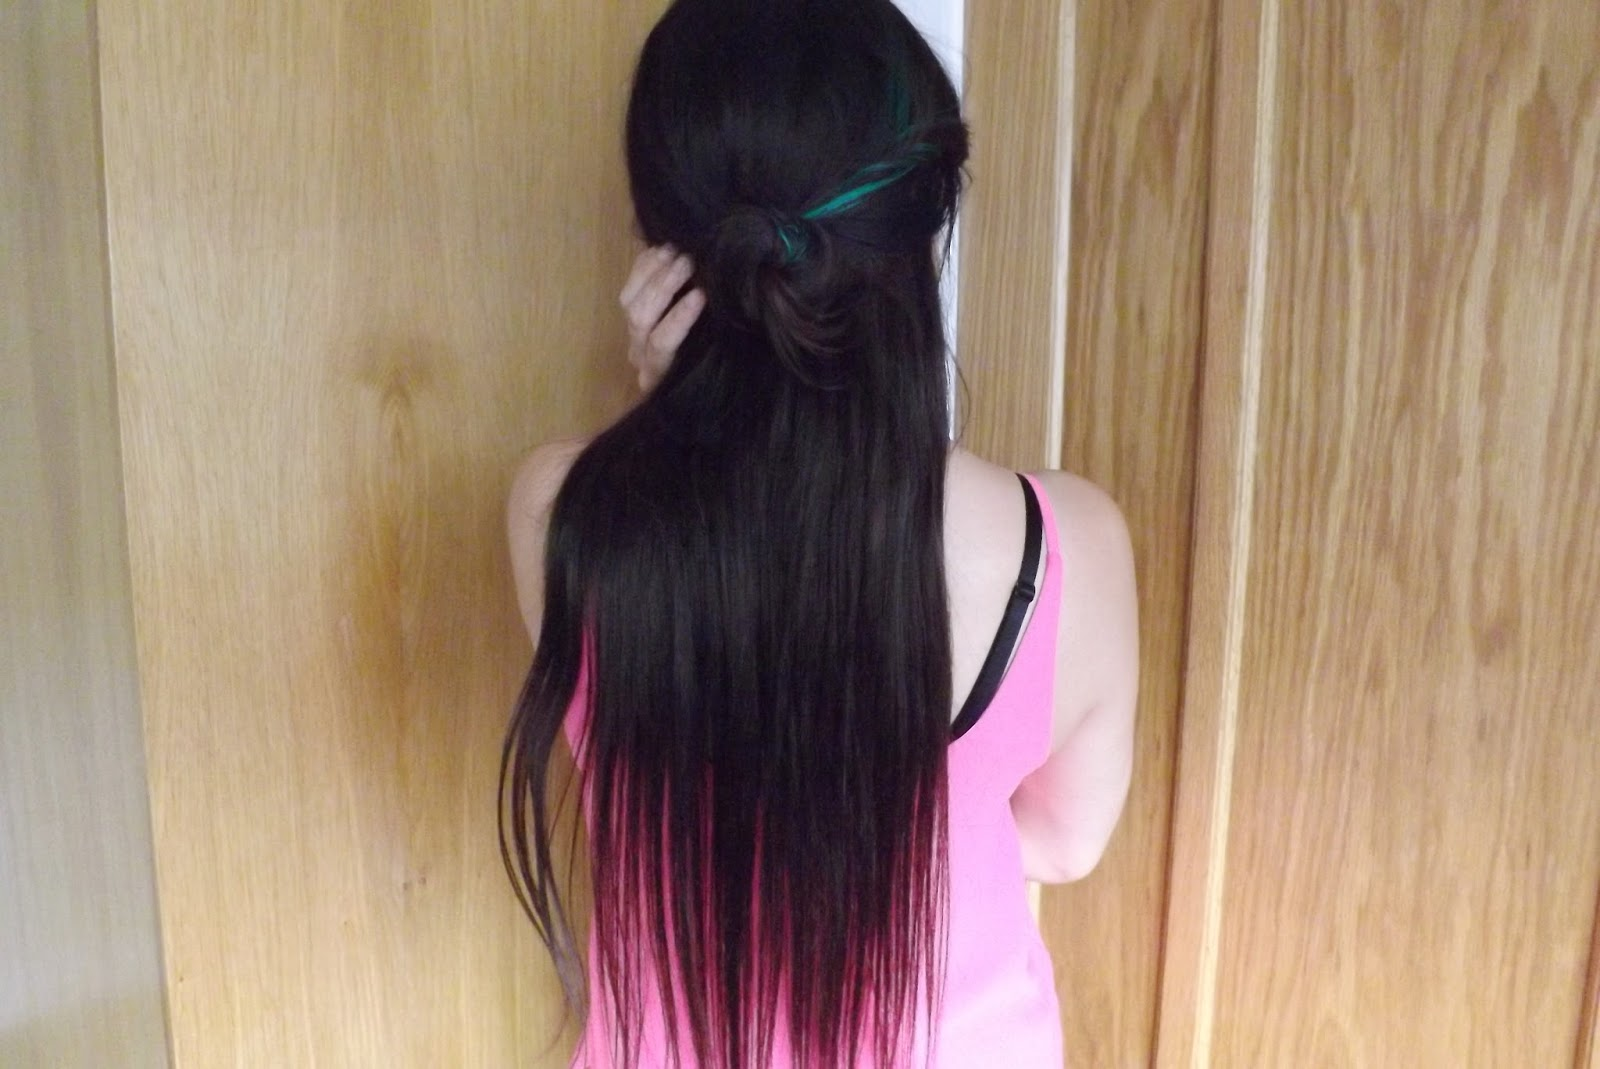 Review halo hair extensions blog what cat says halo hair extensions back view pmusecretfo Image collections